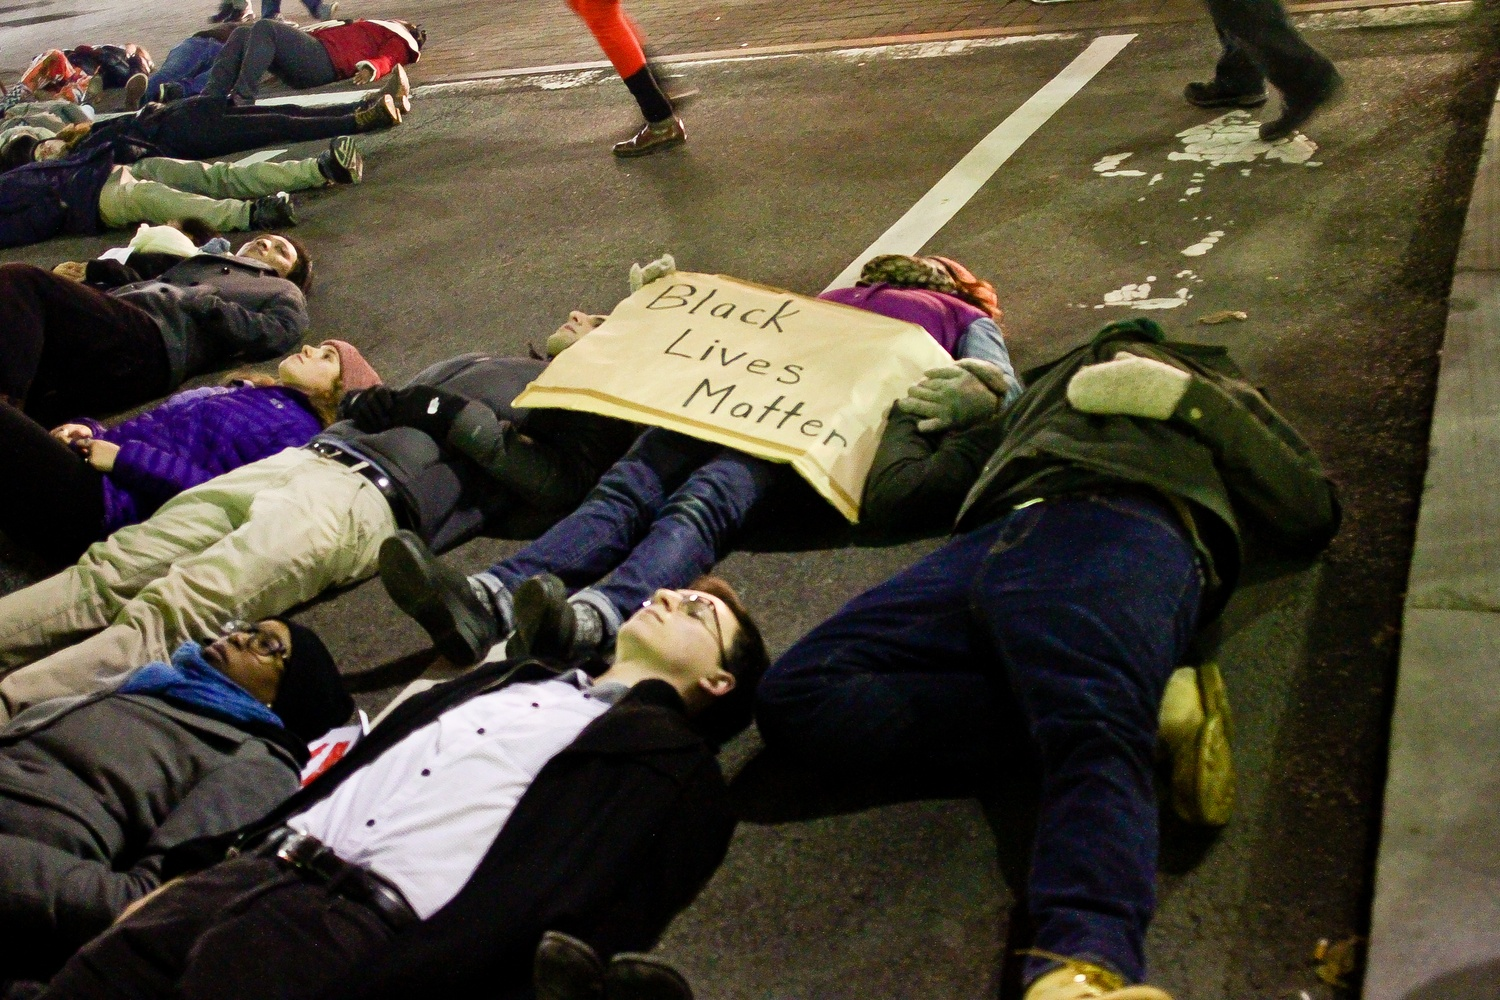 A protestor at the die-in in Harvard Square on Friday evening.